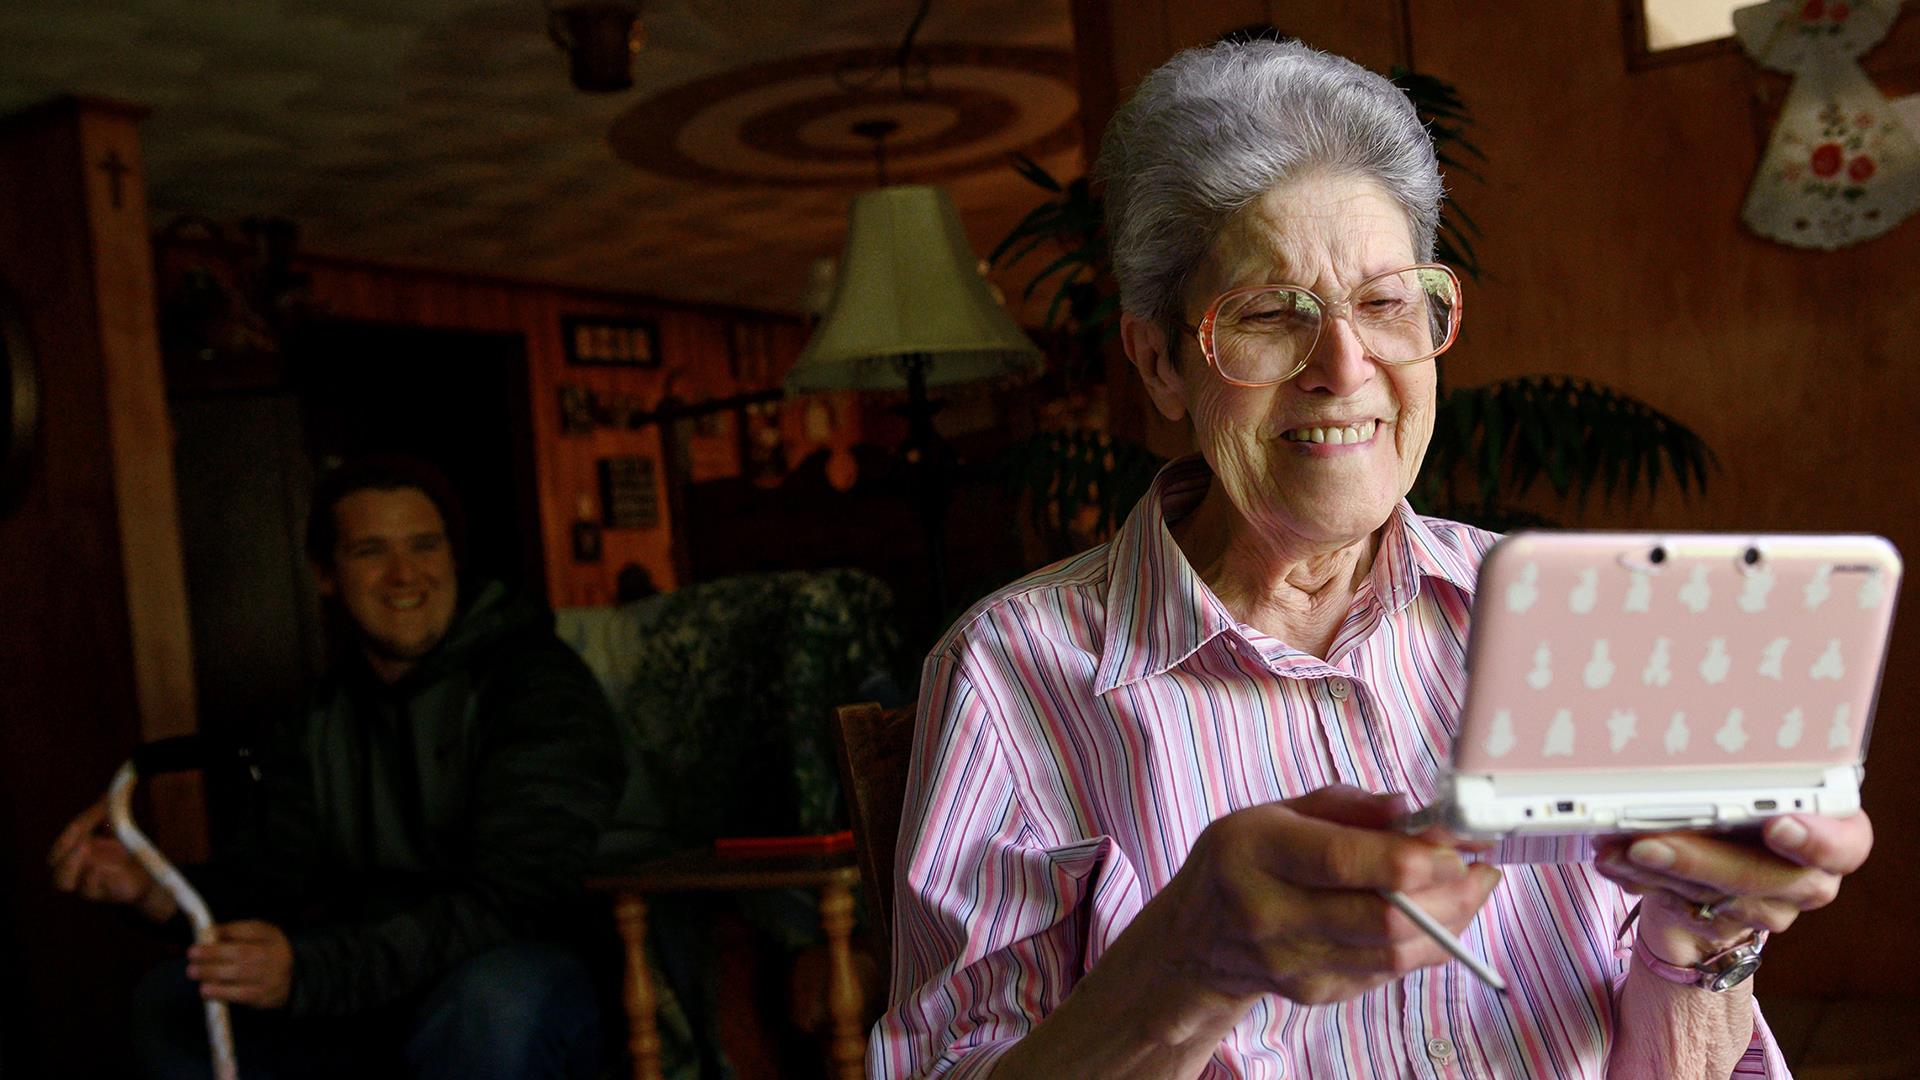 Older people are embracing video games. For some, that means stardom.